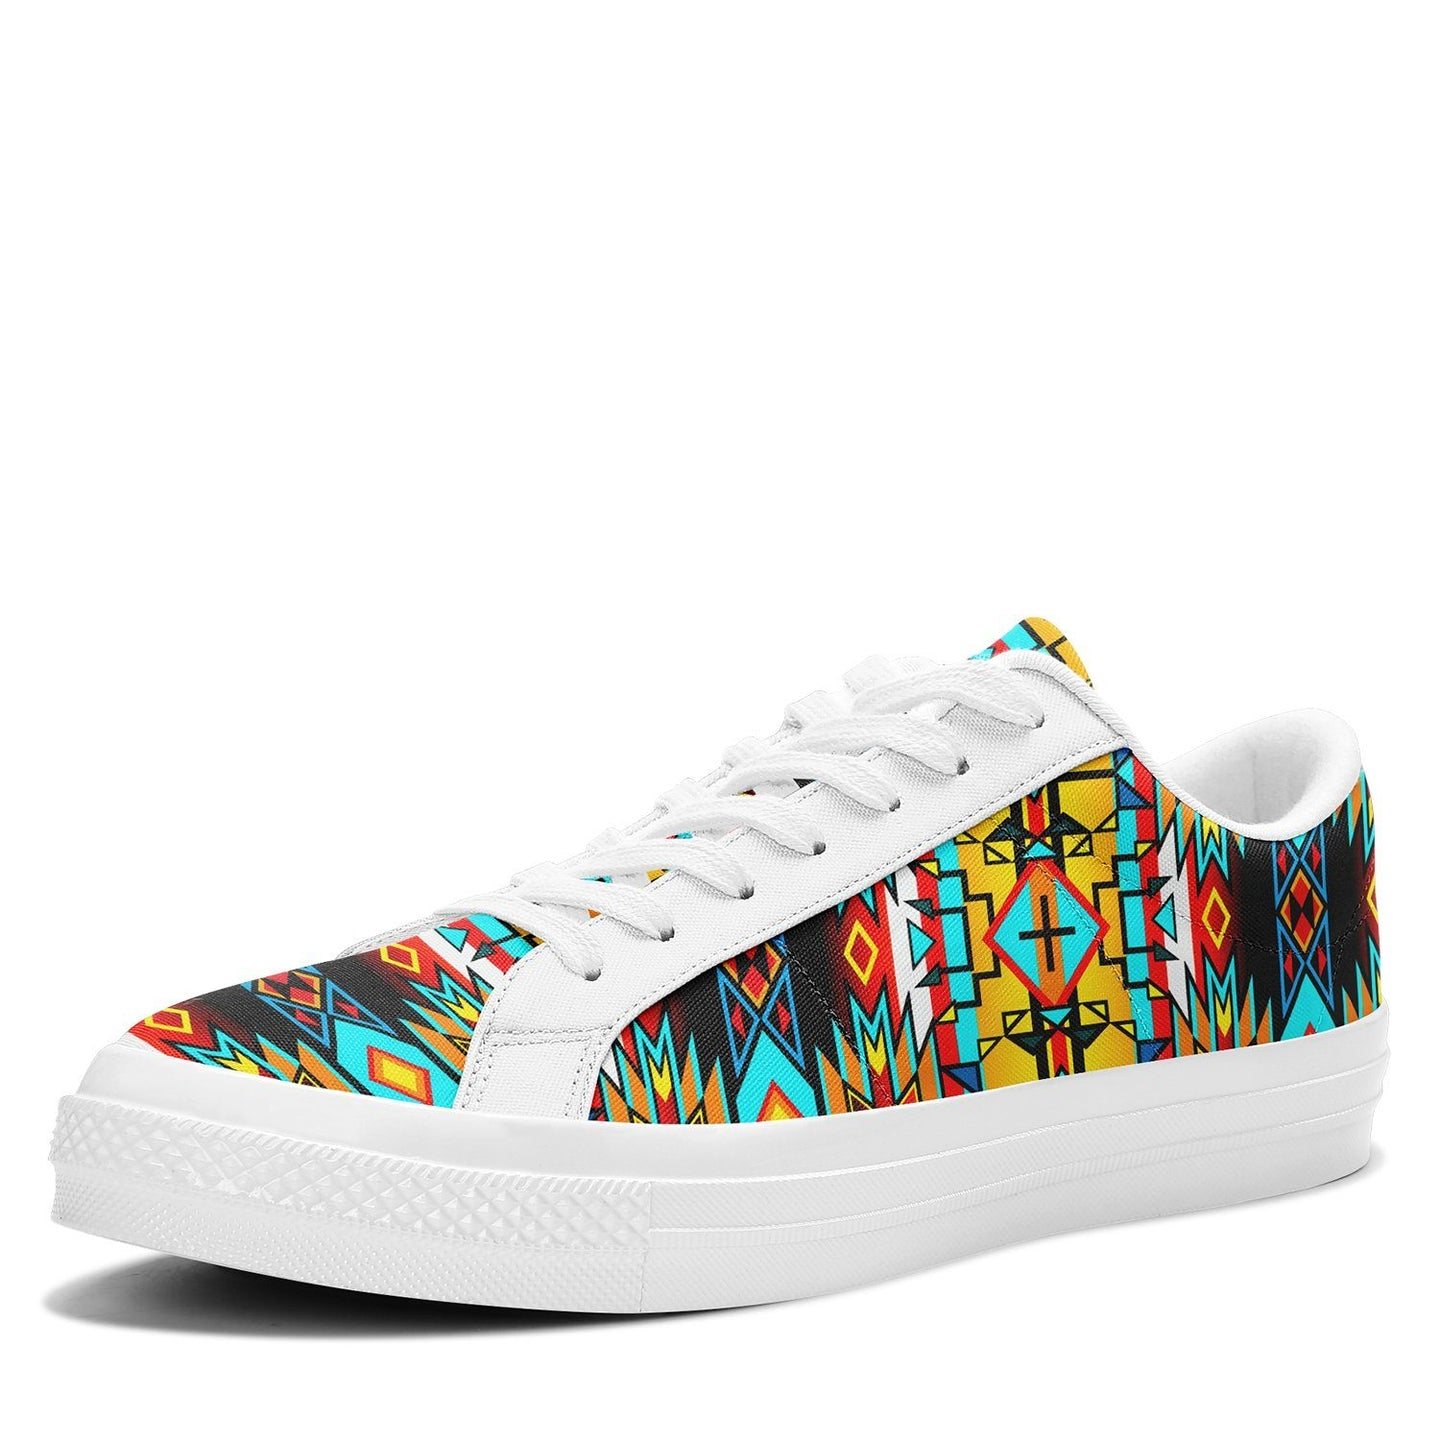 Force of Nature Twister Aapisi Low Top Canvas Shoes White Sole 49 Dzine